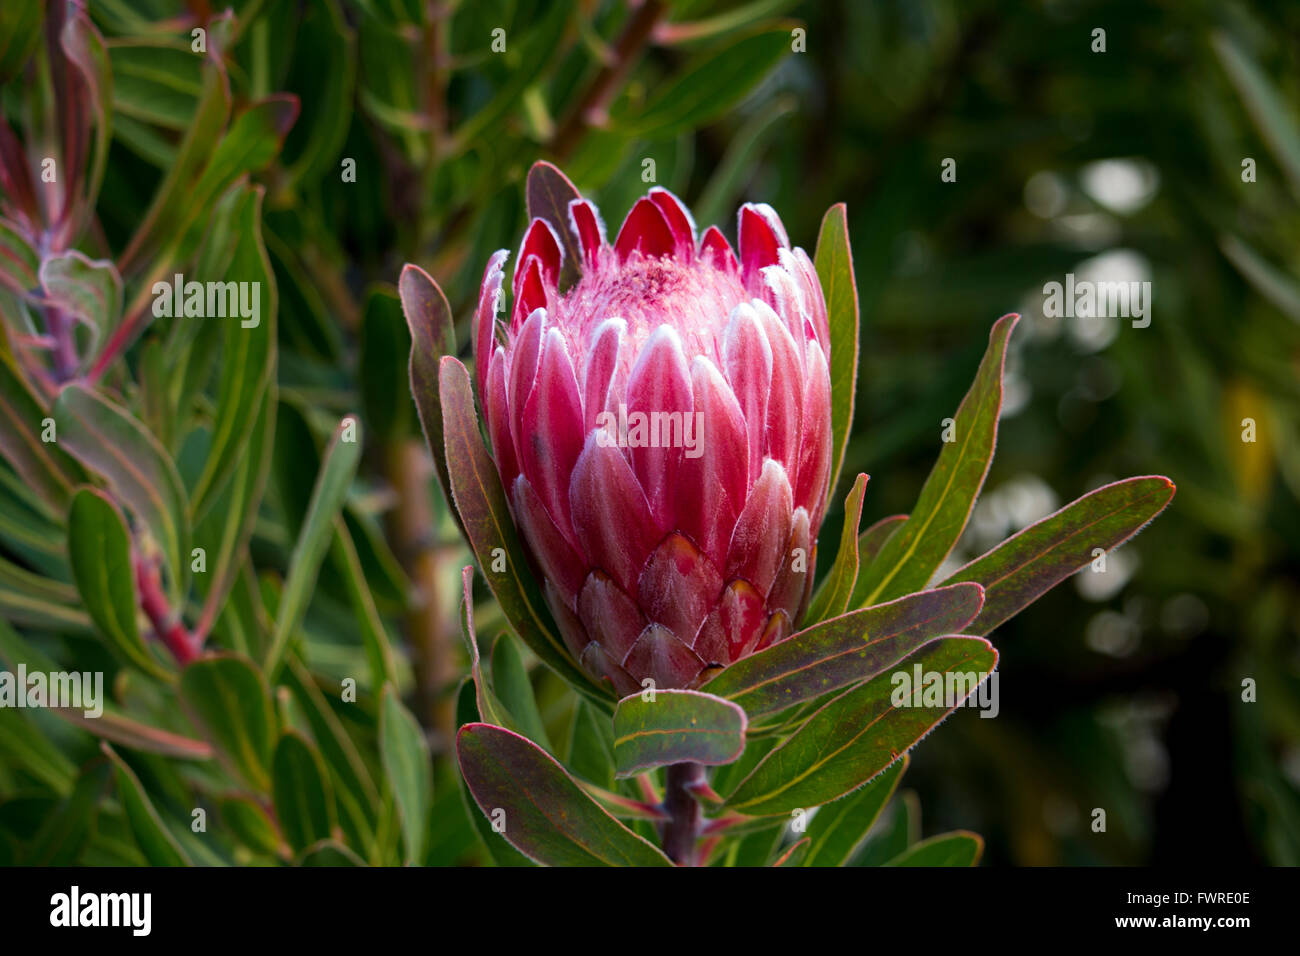 decorative pink flowers of protea blooming in winter attract bees